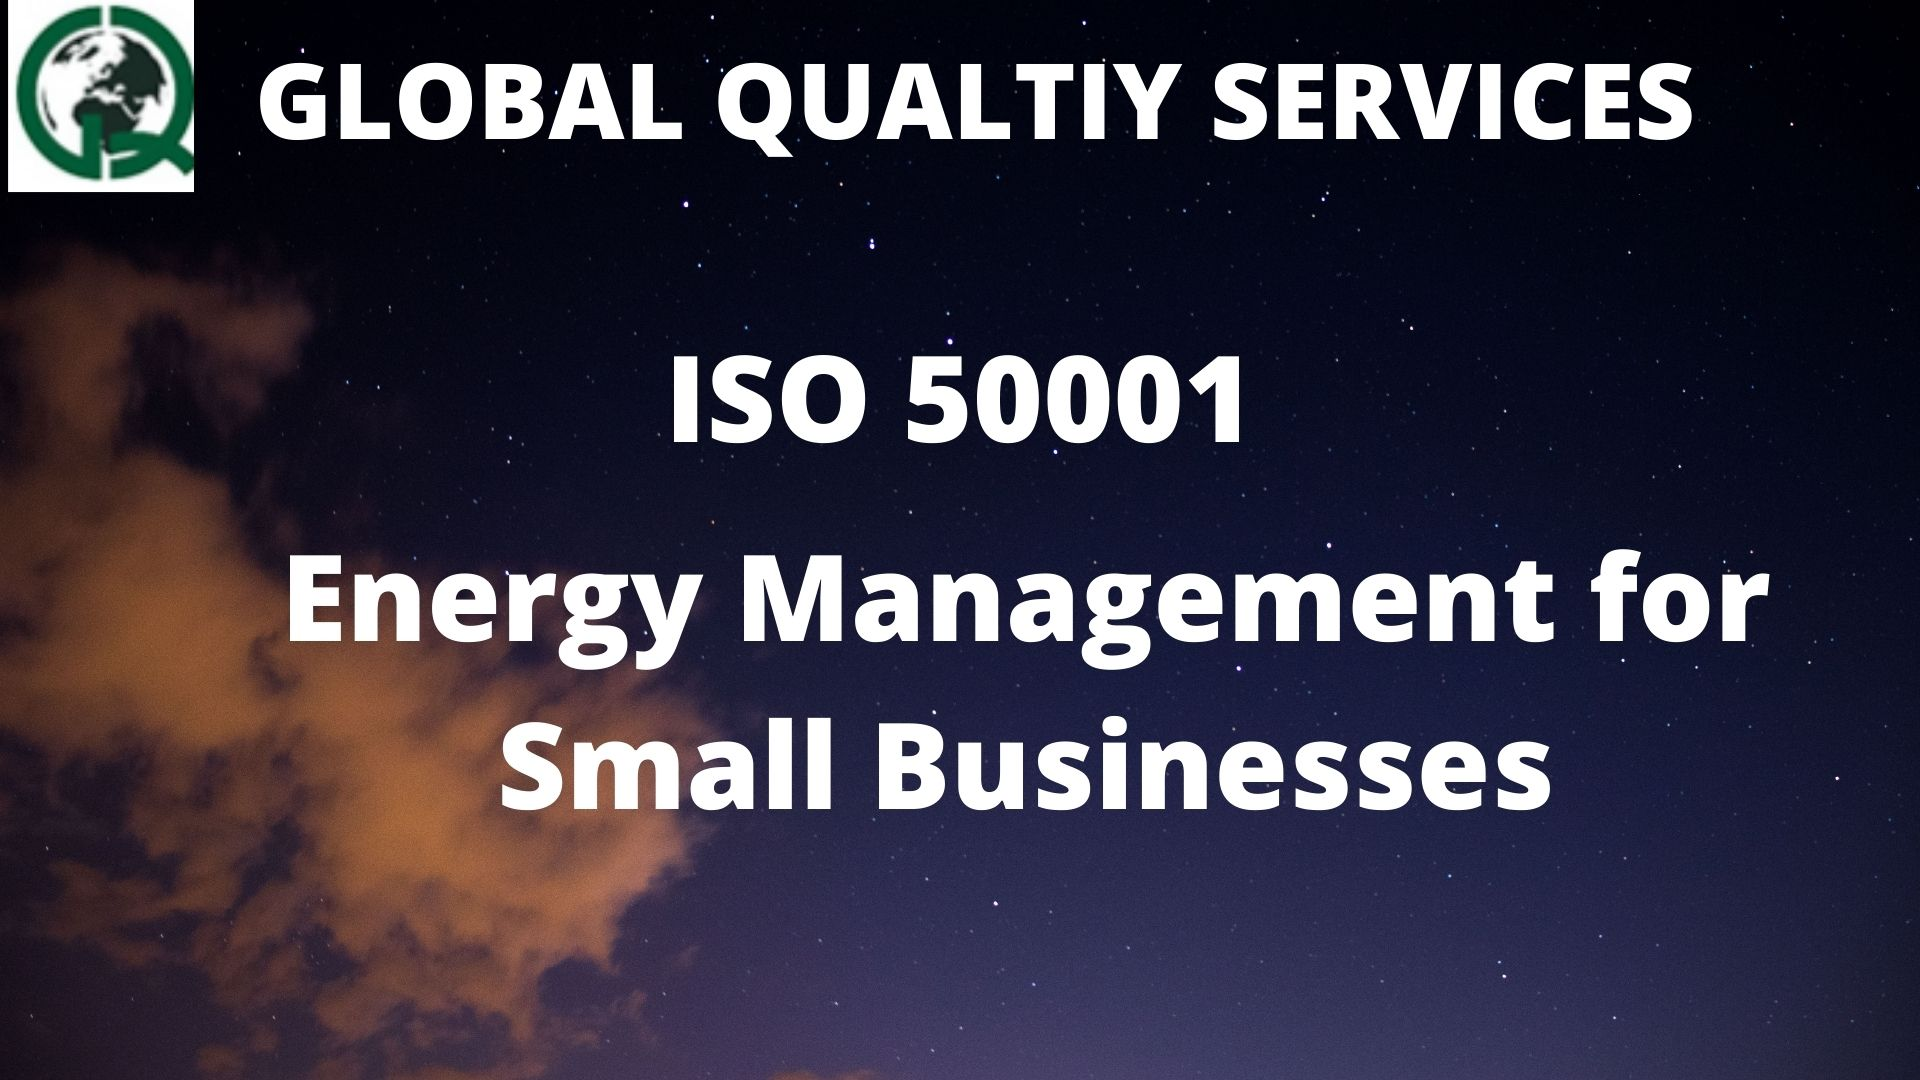 ISO Certification On Energy Management for Small Businesses